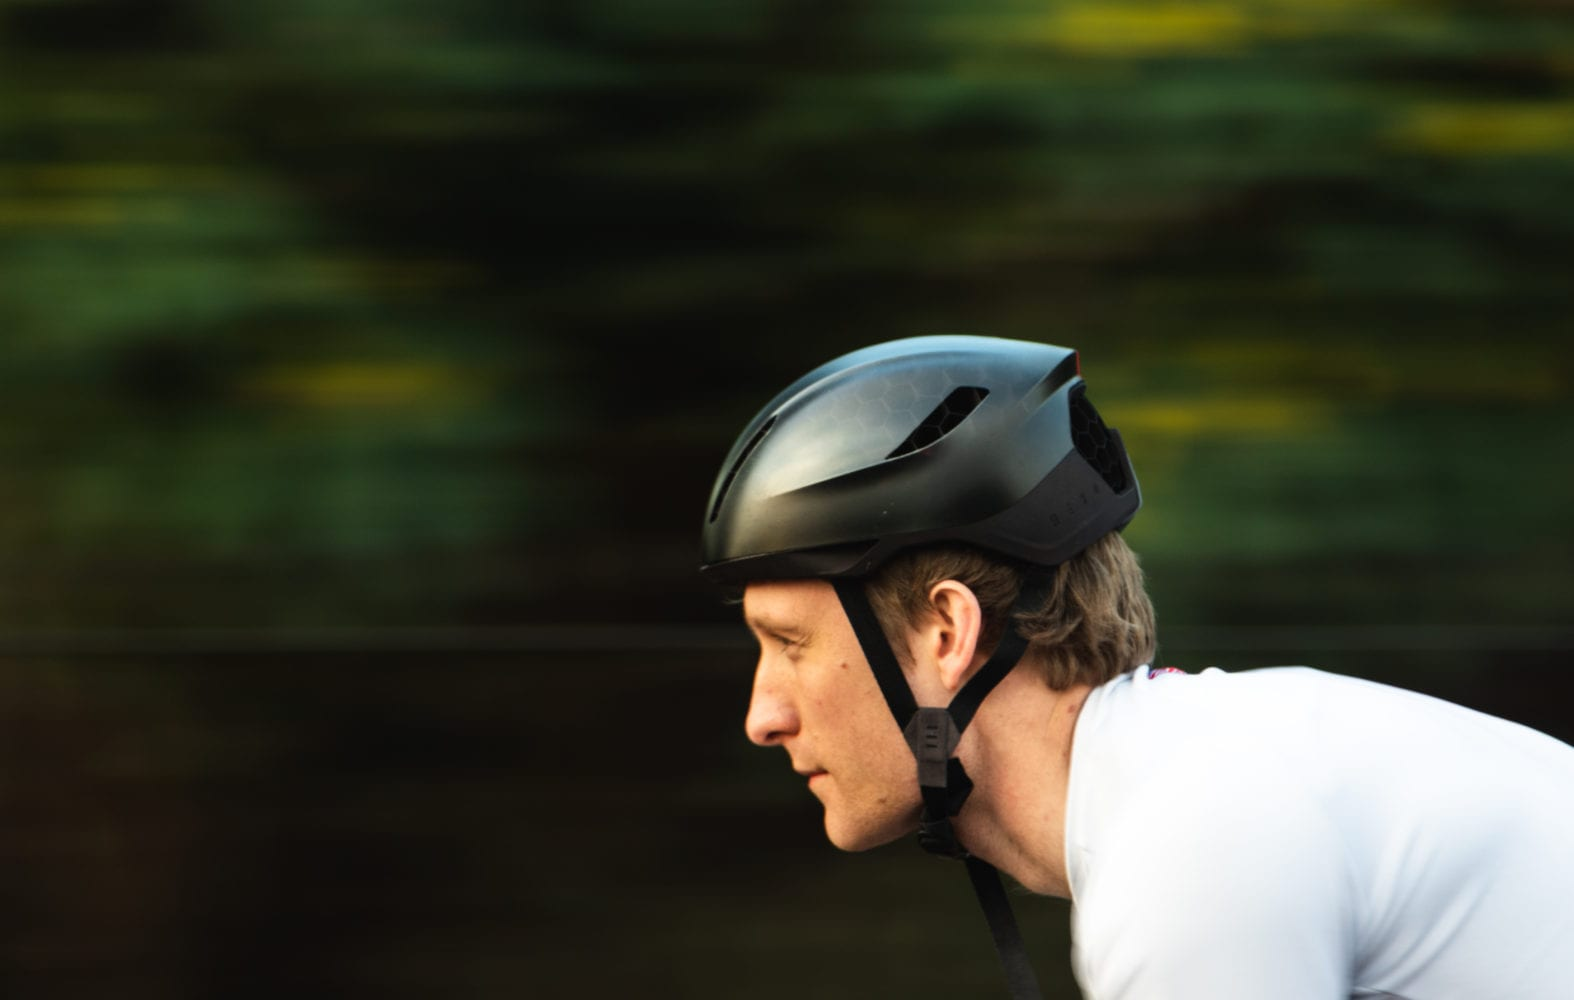 No two heads are the same, why should helmets be? World's first custom-made 3D printed cycle helmet launched